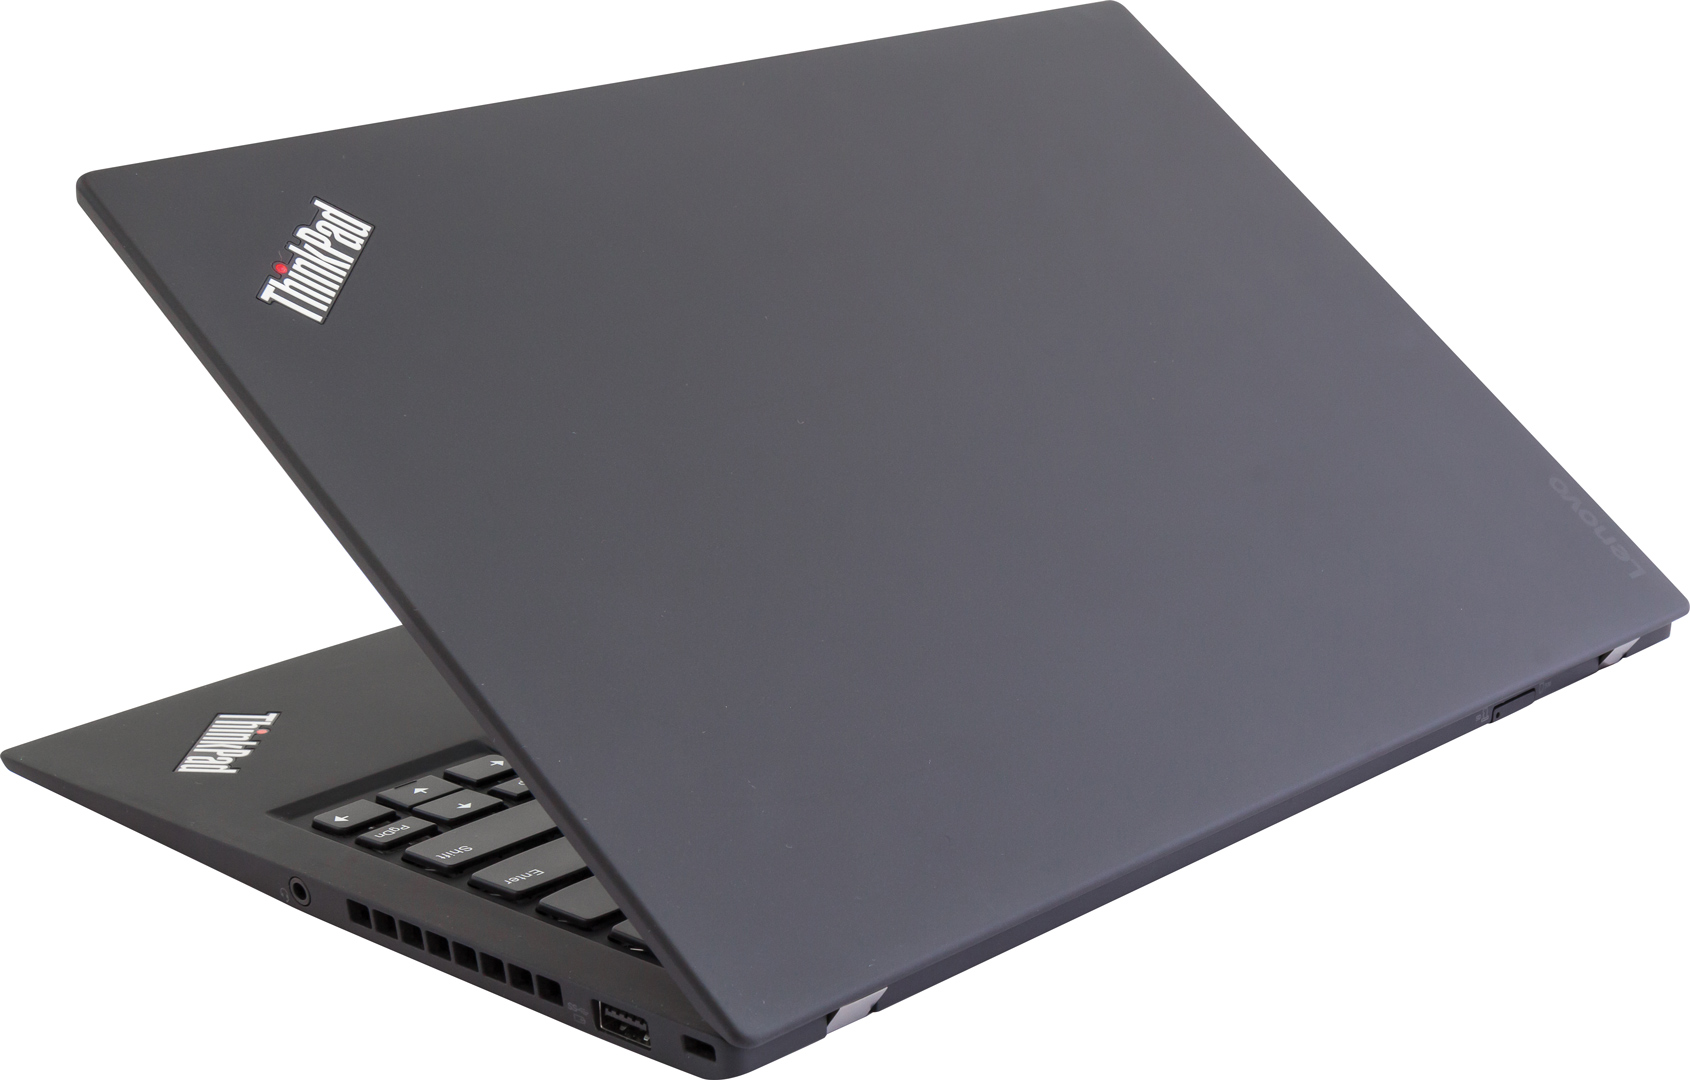 Thinkpad X1 Carbon 4